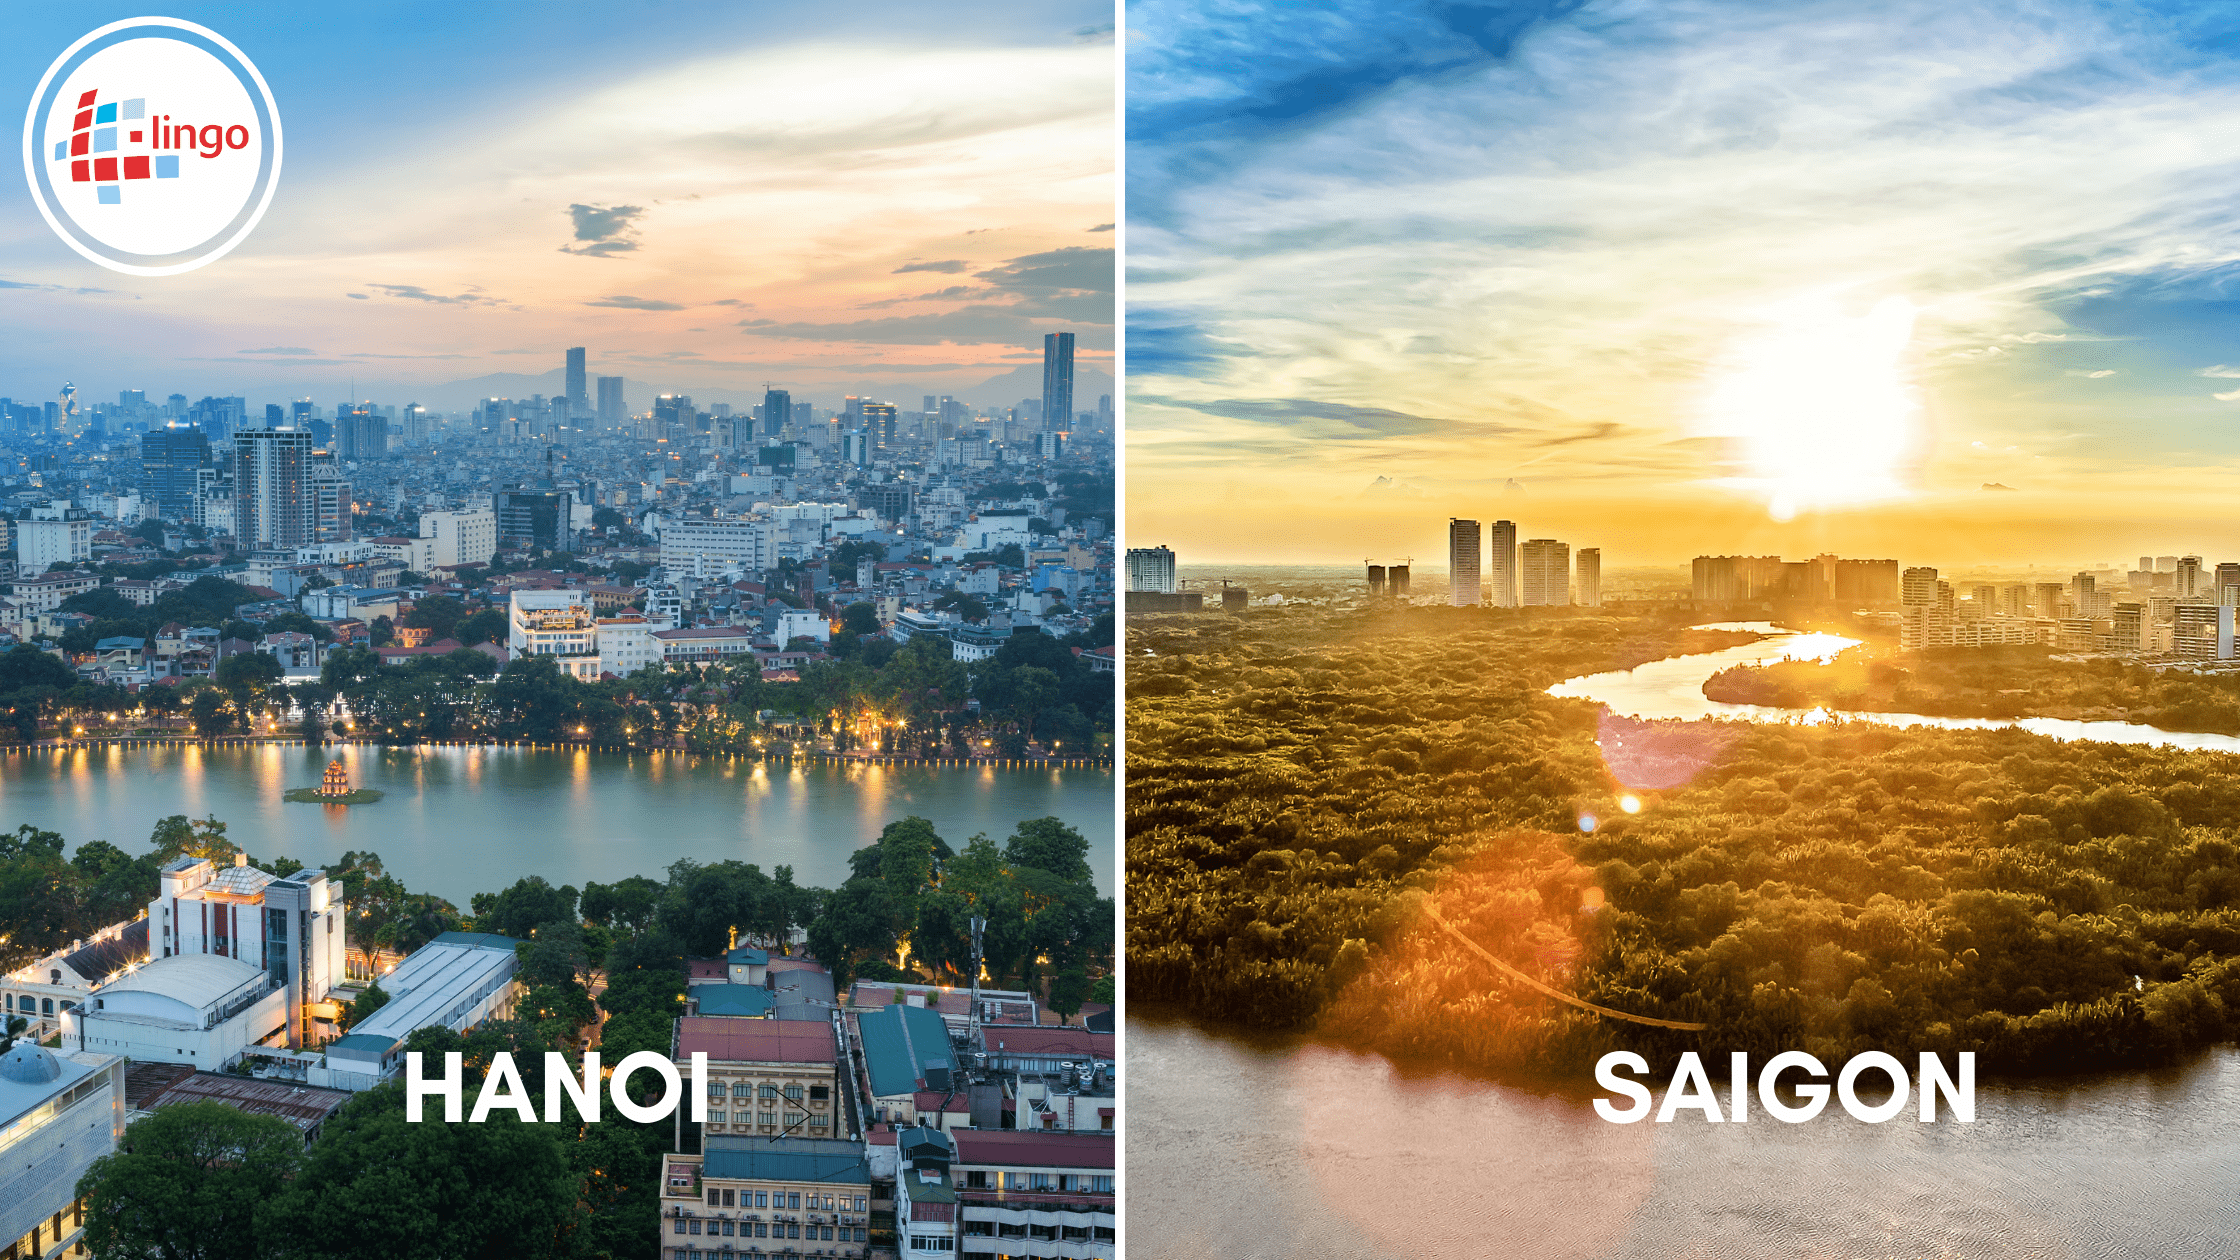 L-Lingo Blog: Hanoi and Saigon Vietnam. Difference between northern and southern Vietnamese.